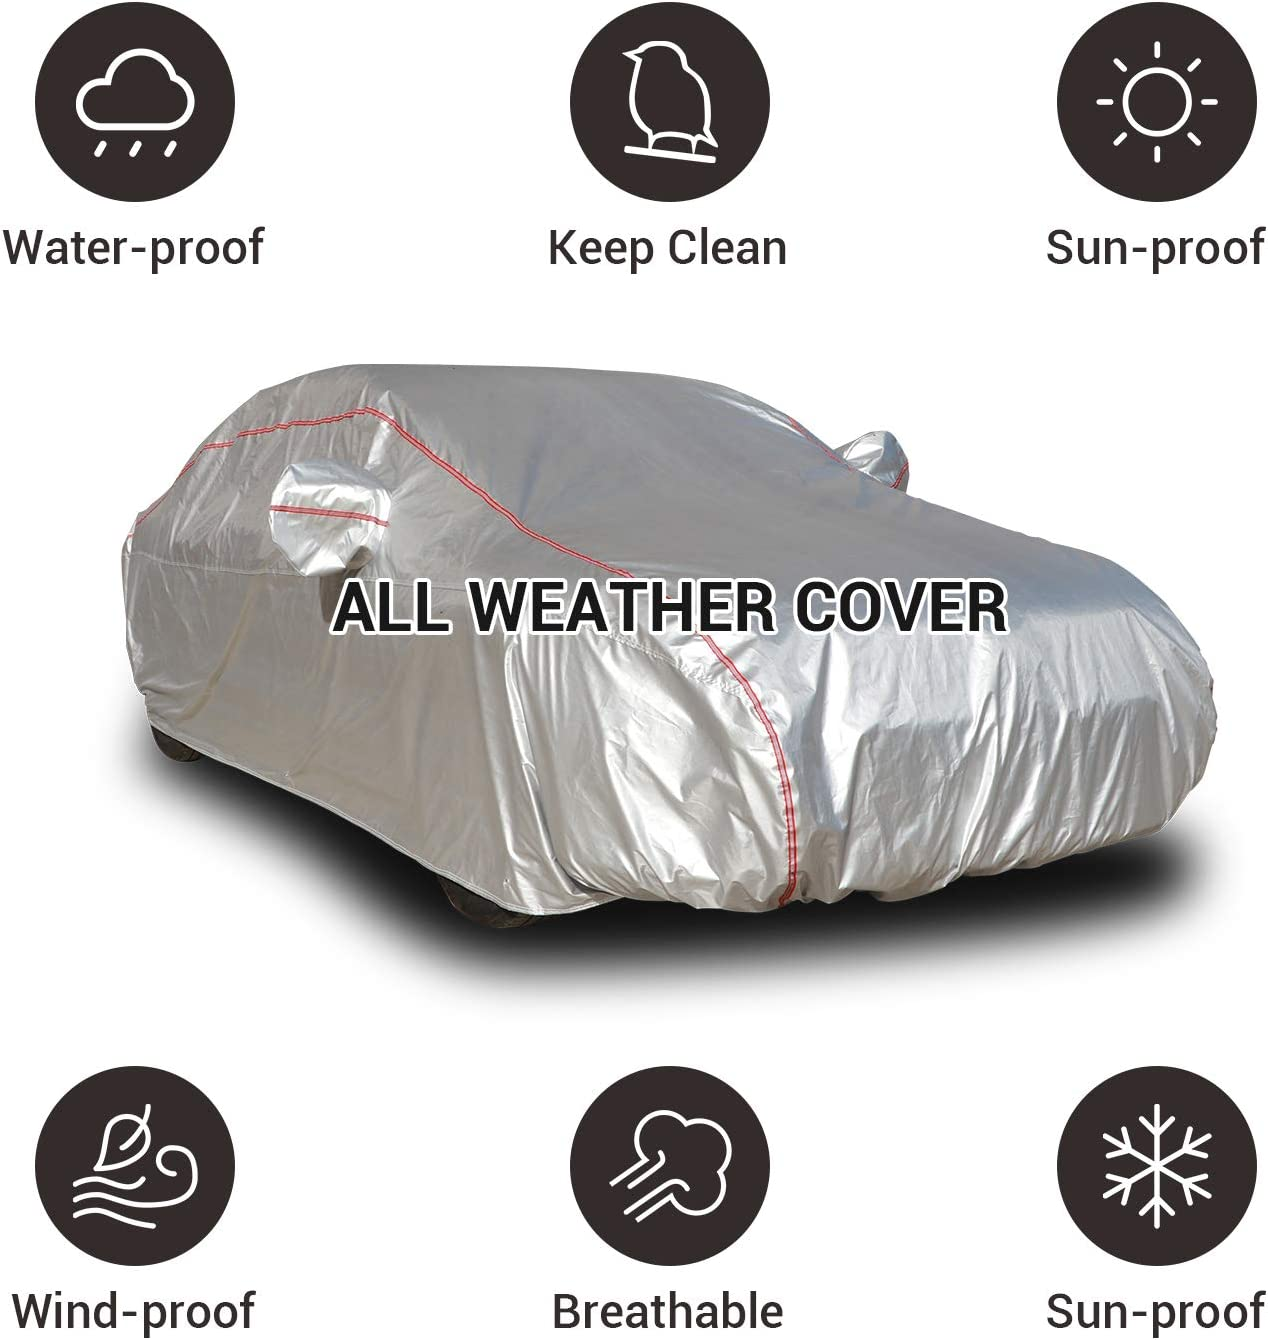 Shieldo Basic Car Cover with Build-in Storage Bag Door Zipper Windproof Straps and Buckles 100/% Waterproof All Season Weatherproof Fit 191-200 Length Sedan